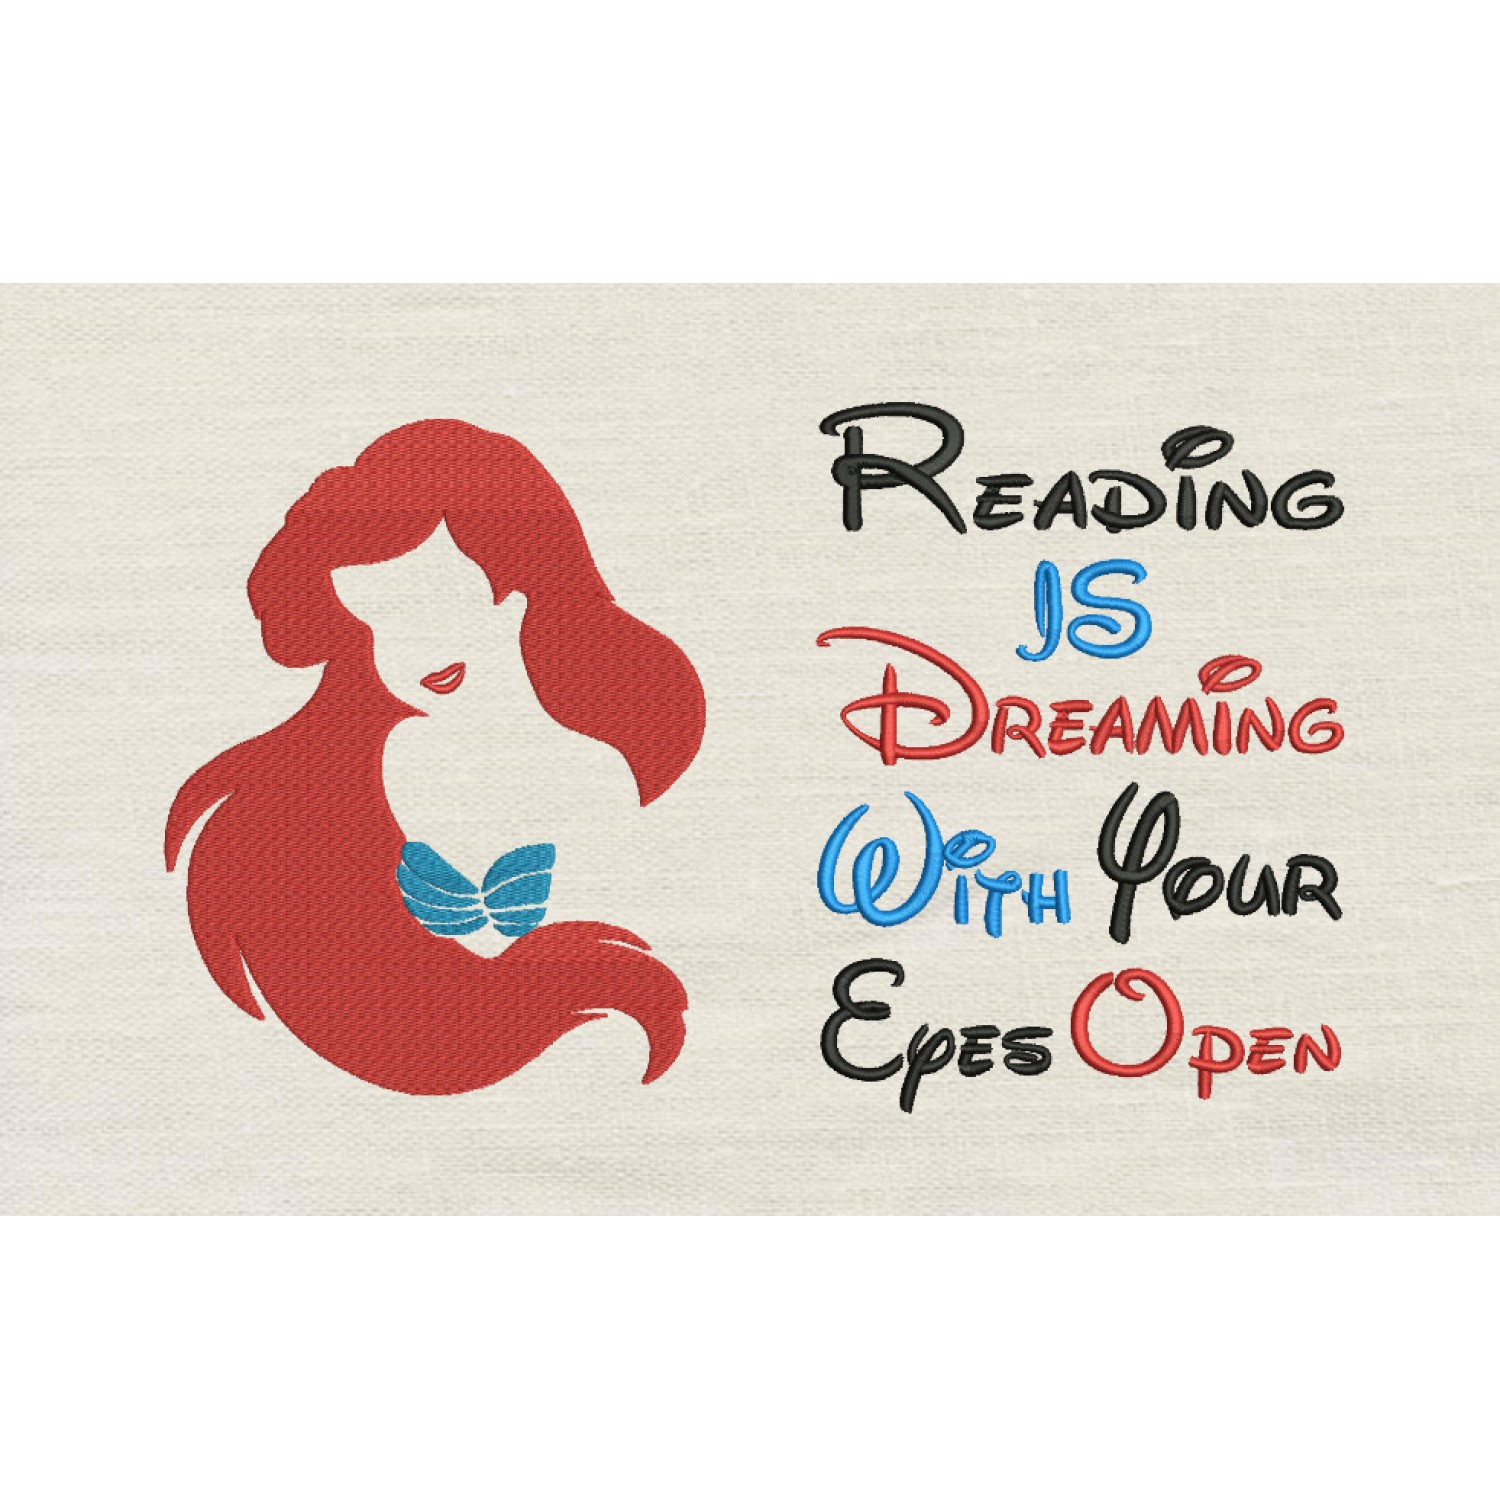 Little Mermaid Embroidery with reading is dreaming V2